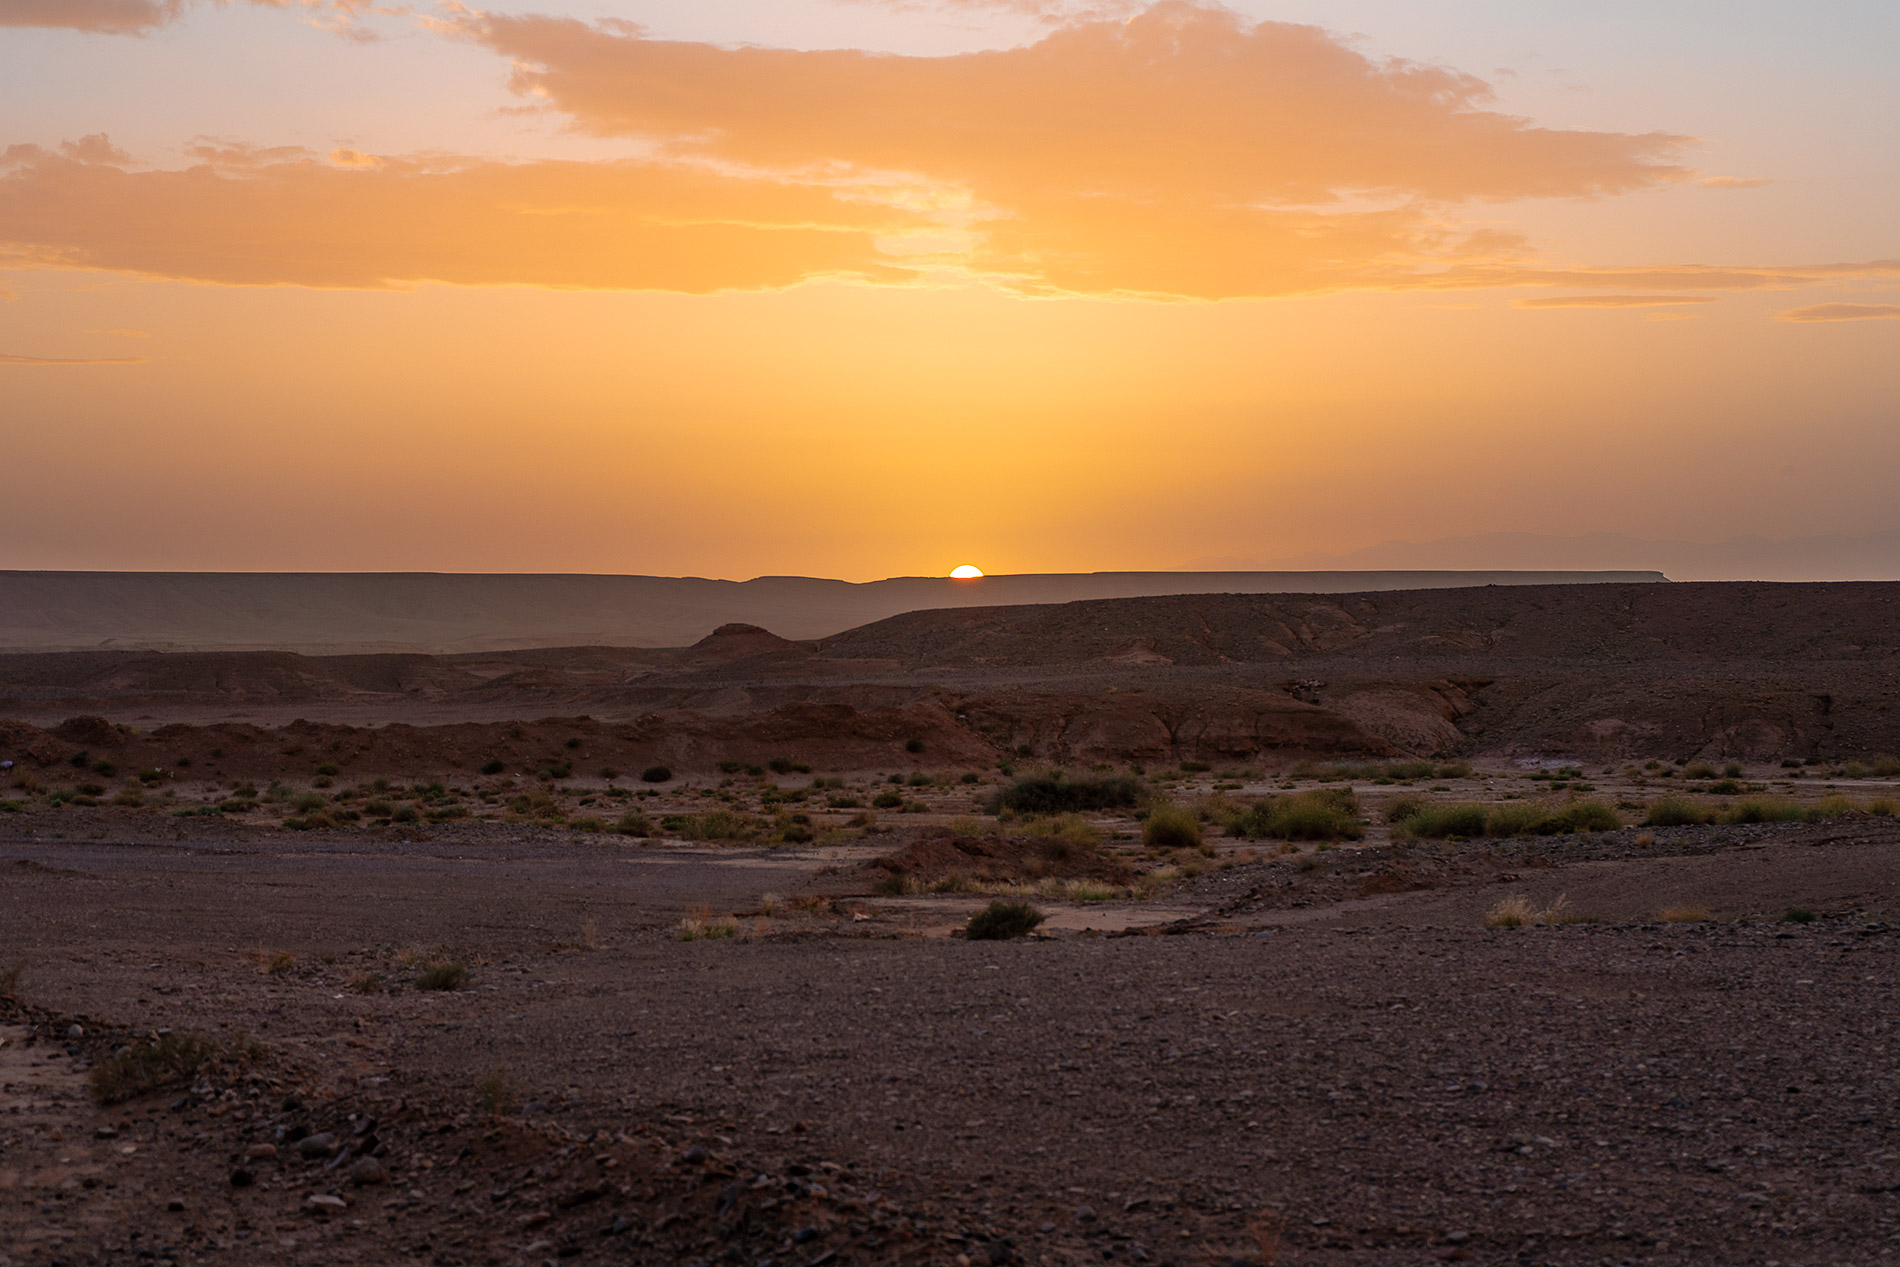 An orange sunset to end our desert tour in Morocco